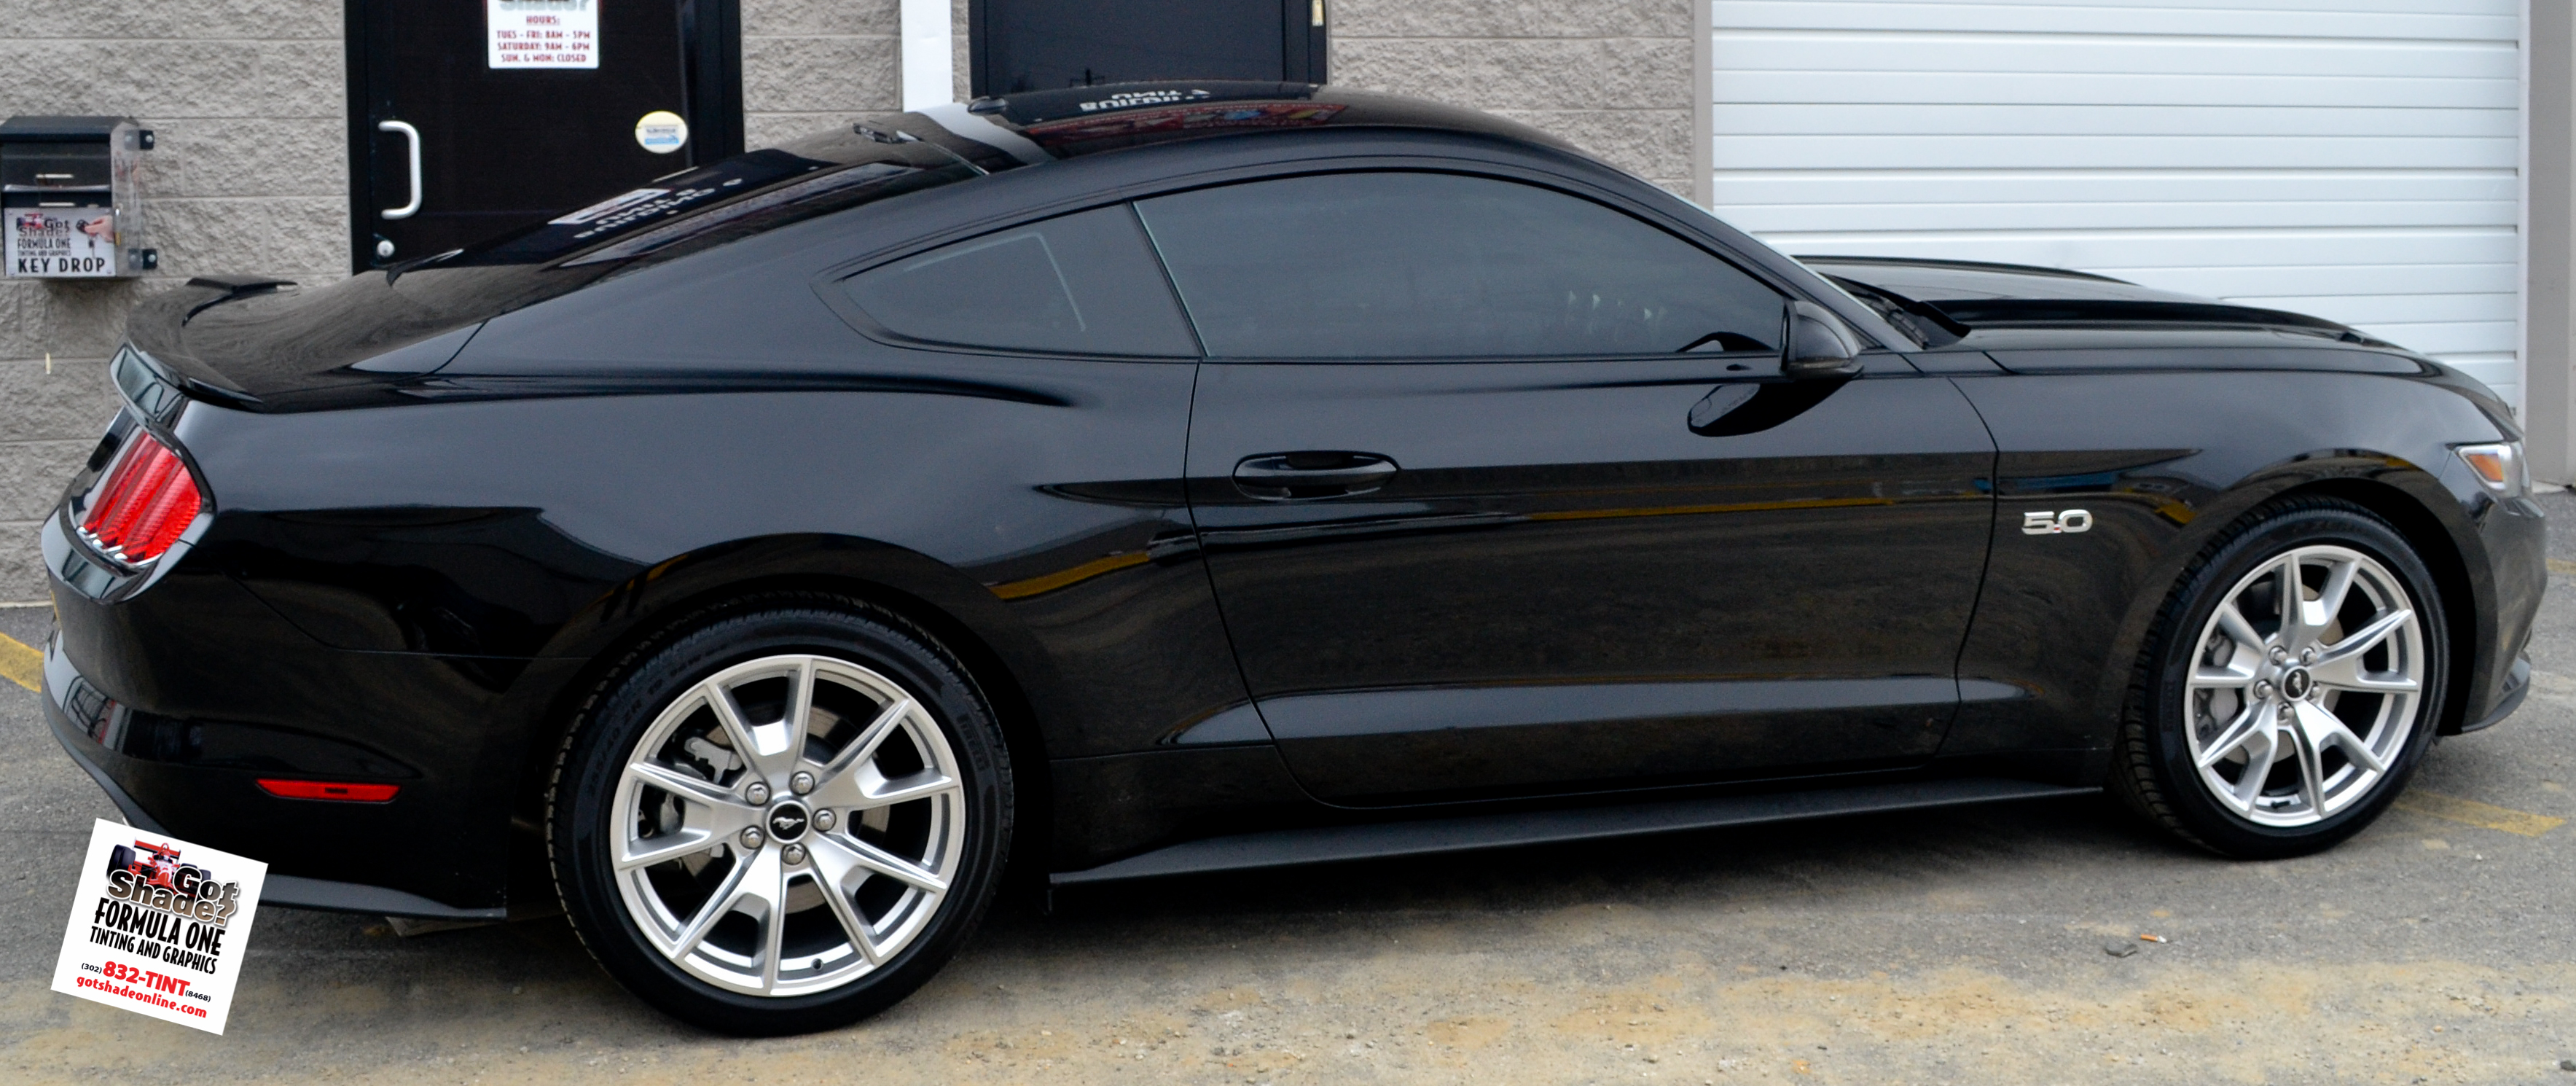 Used 2015 Ford Mustang Pricing For Sale Edmunds >> 2002 Ford Mustang Kbb   Upcomingcarshq.com